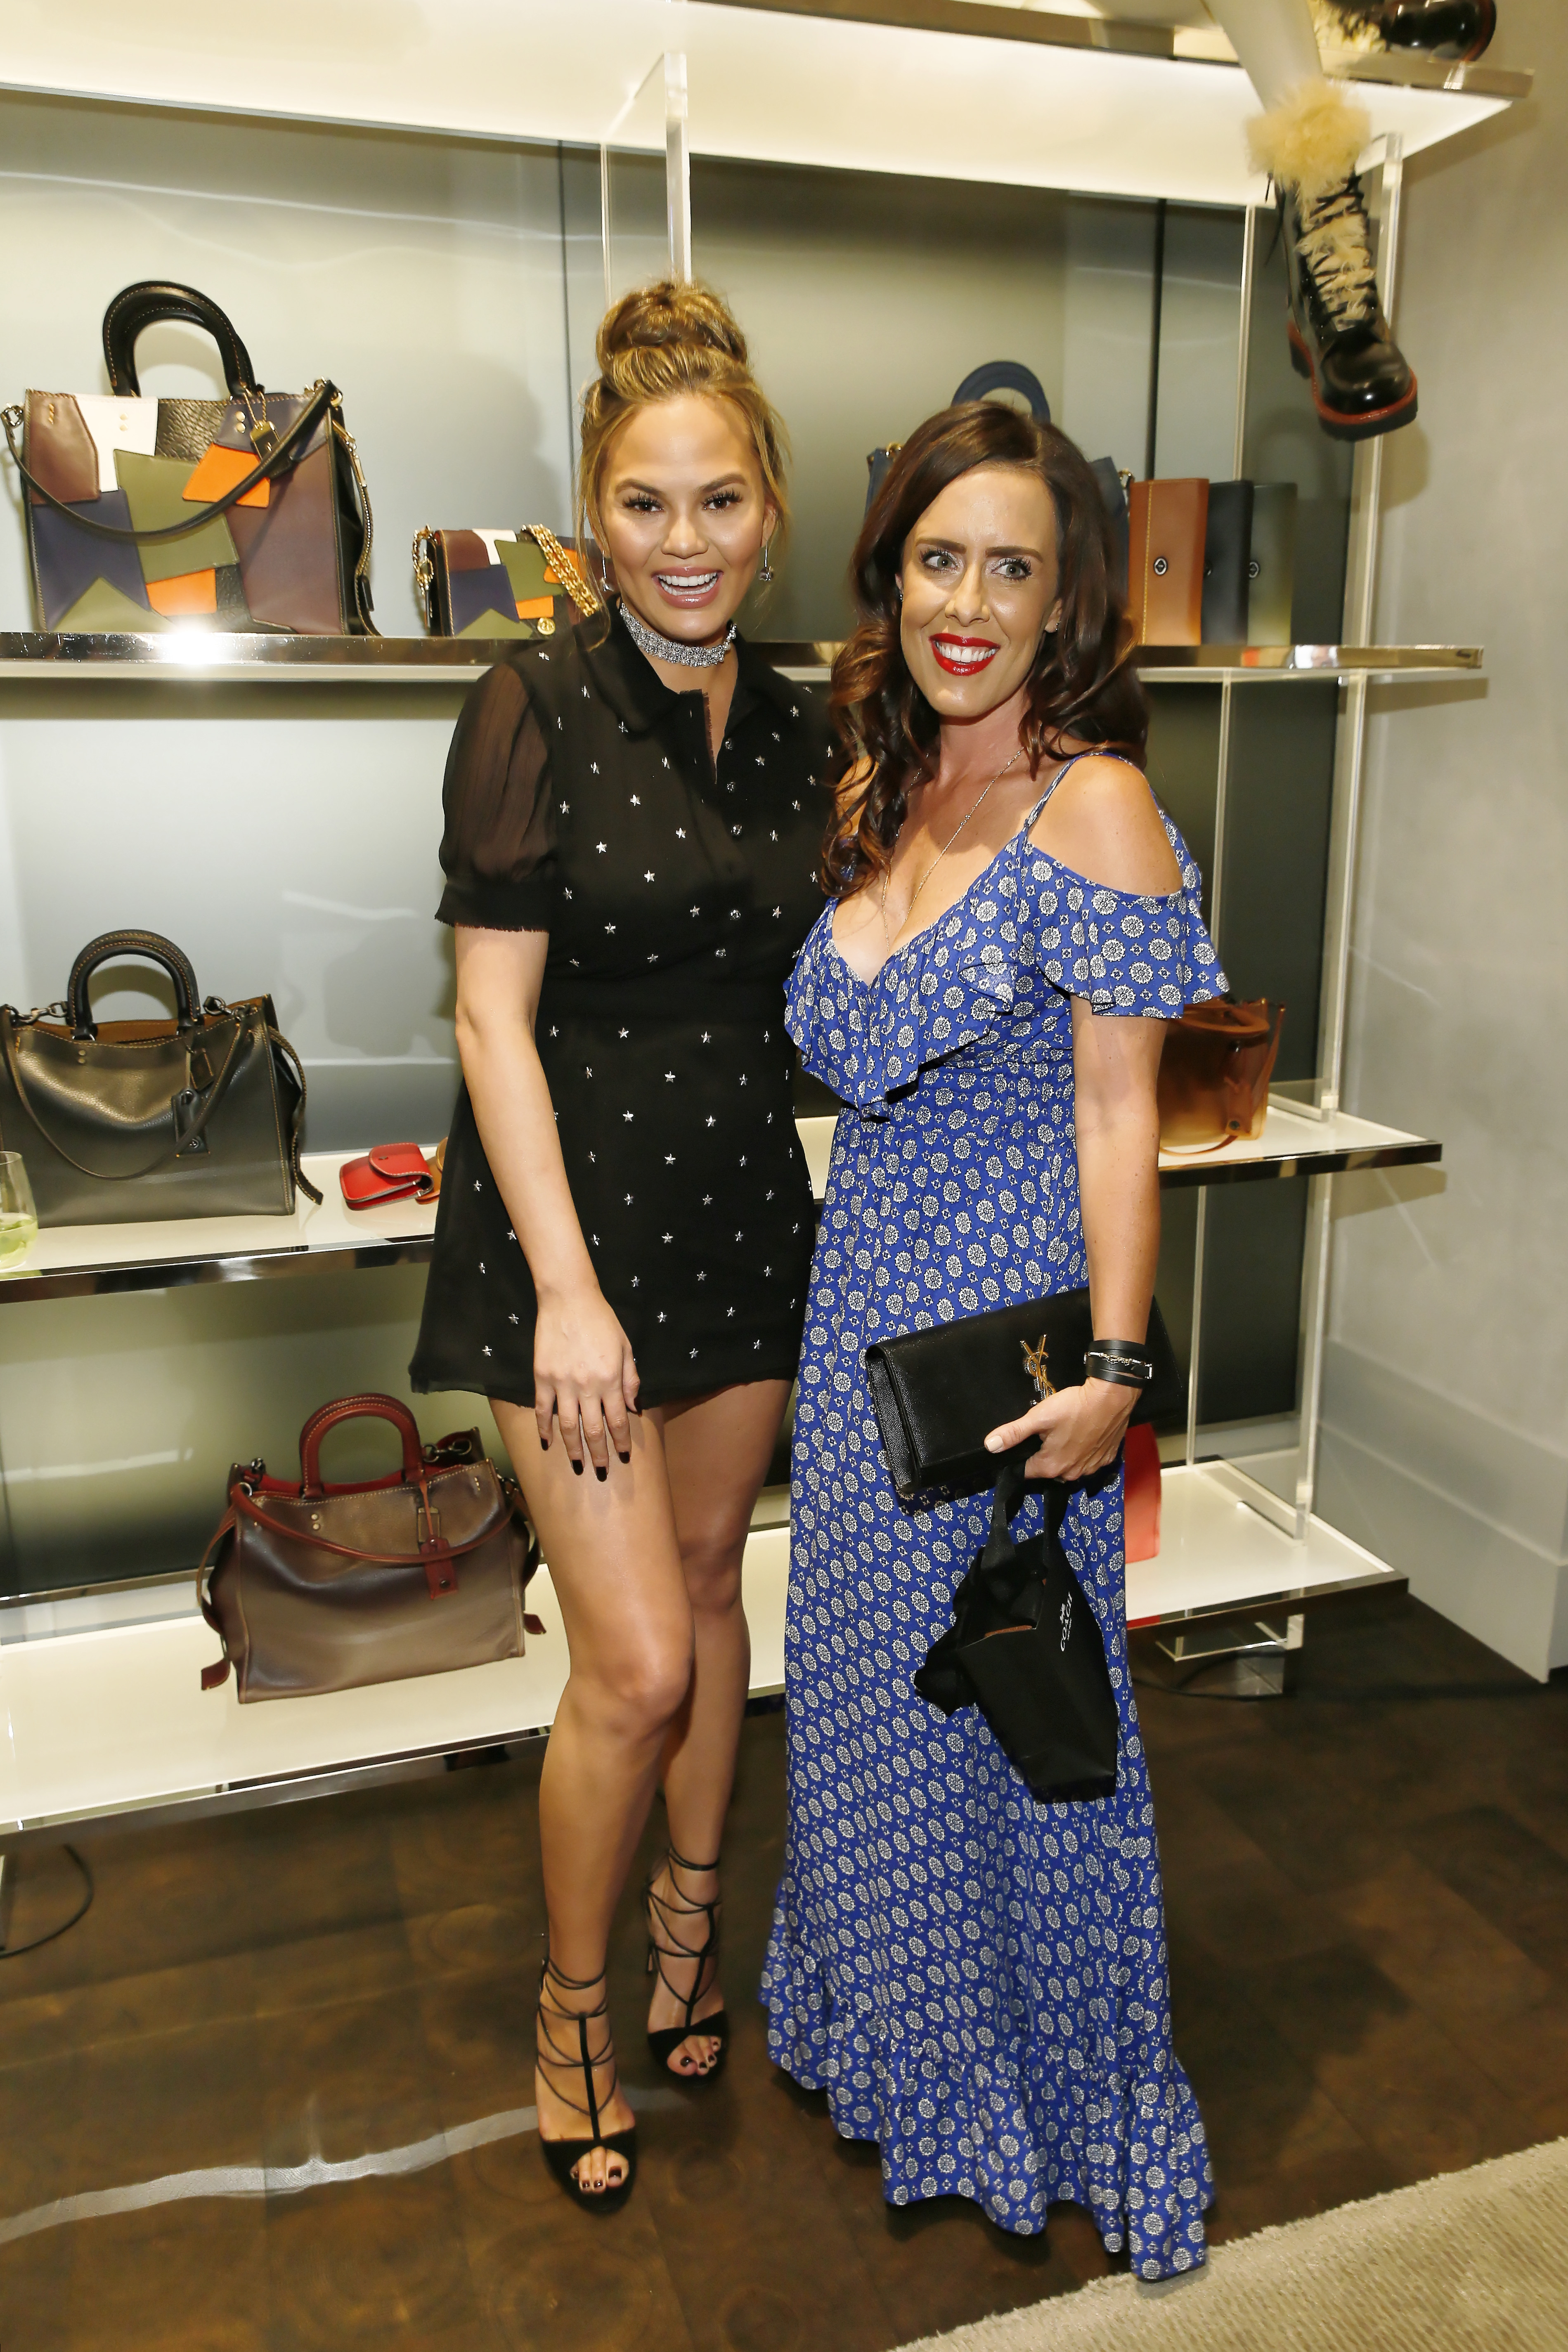 Chrissy Teigen (L) and Cassydy Gavin (R) pose at COACH's Pre-Fall 2016 Collection at the Coach South Coast Plaza boutique on June 16, 2016 in Costa Mesa, California. (Photo by Ryan Miller/Getty Images for COACH)